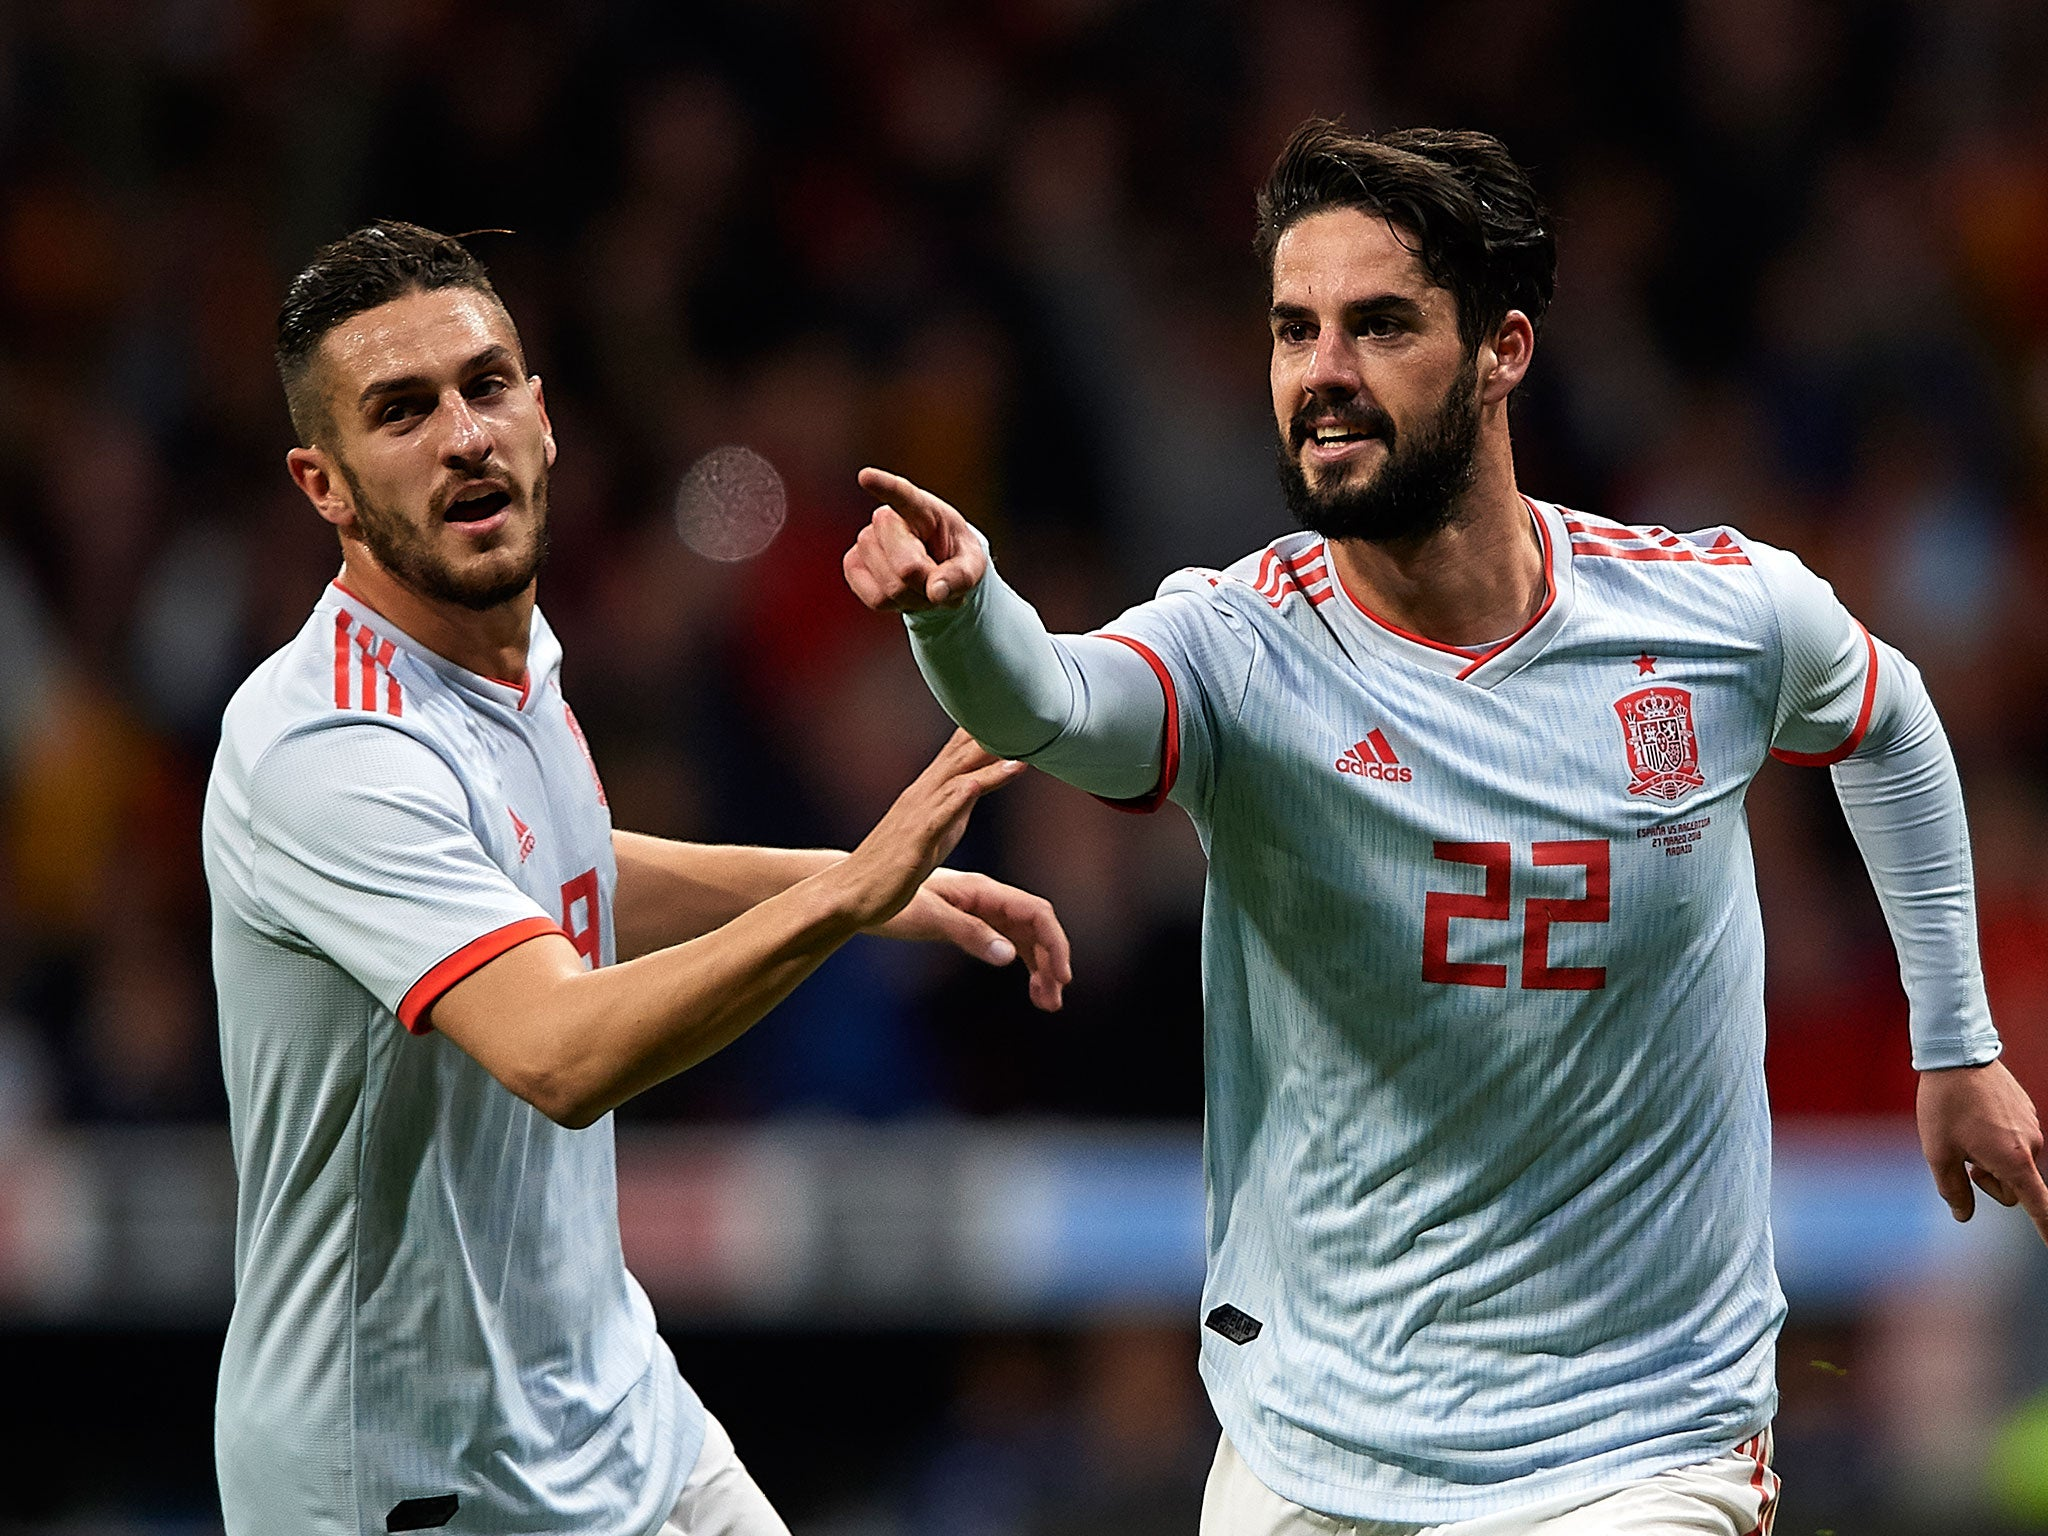 Isco issues thinly veiled attack on Zinedine Zidane over Real Madrid minutes after inspired Spain hat-trick